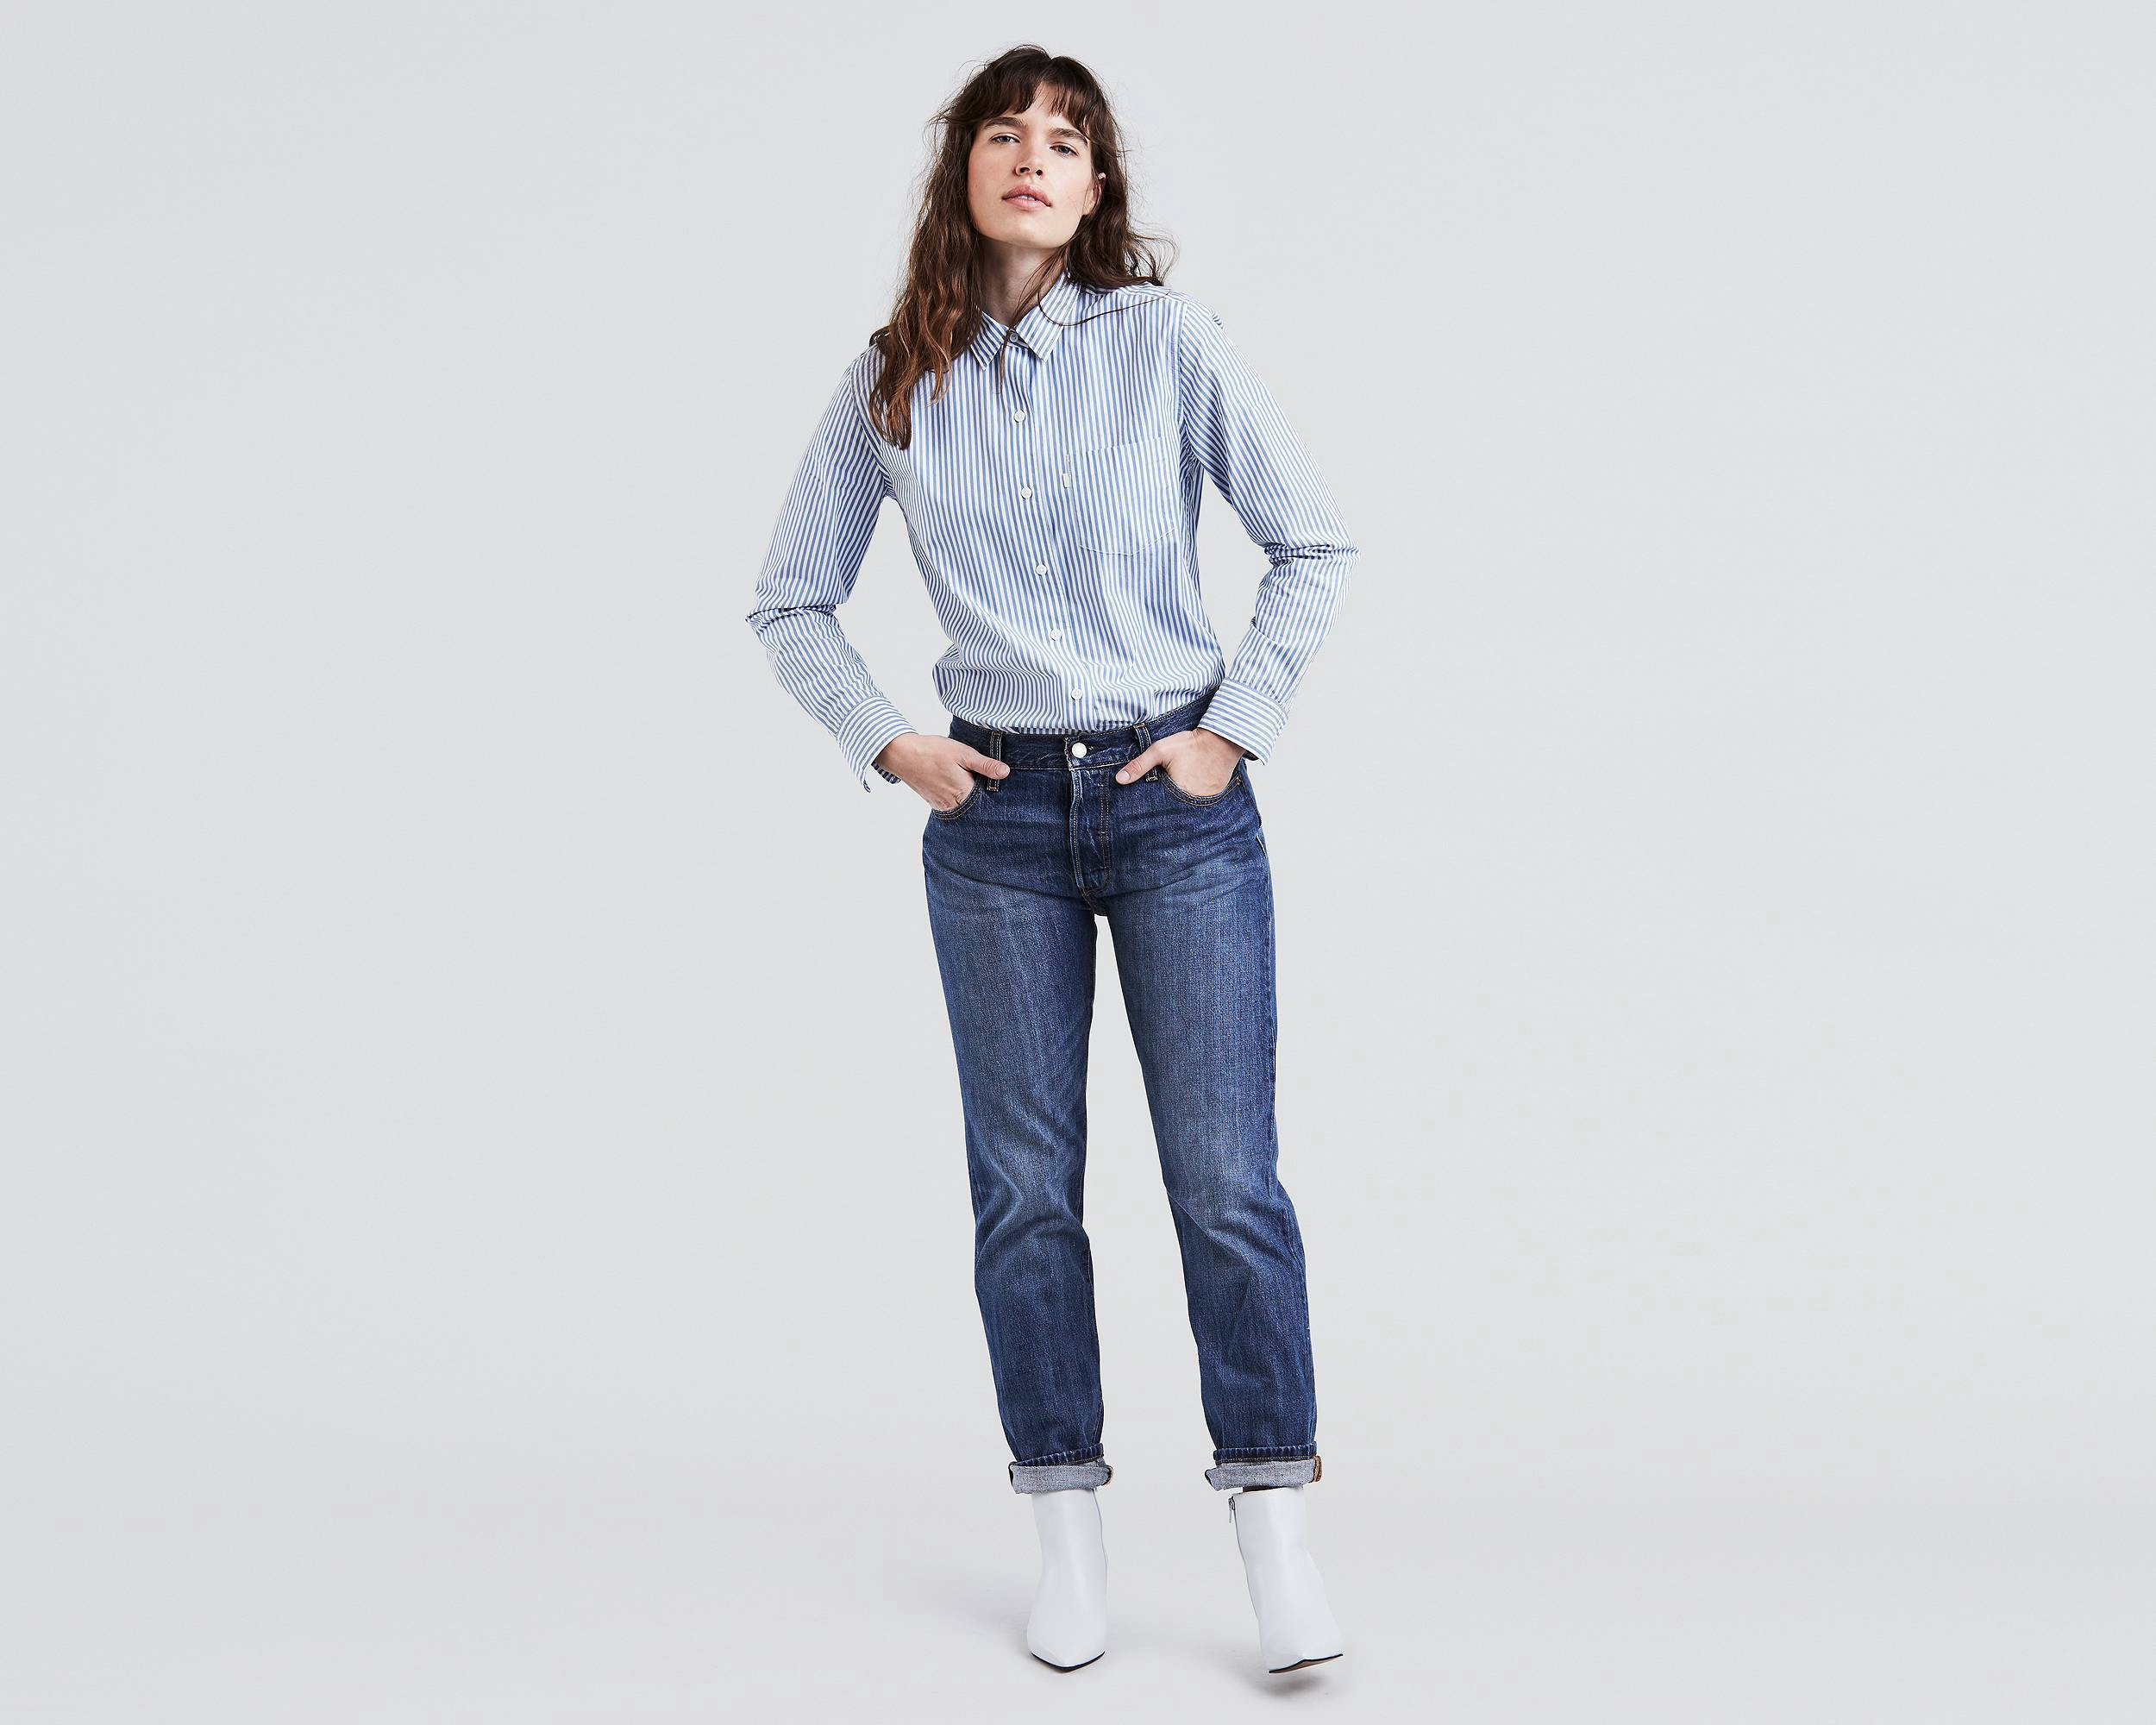 1ae3a01c43b Levi's 501® Original Fit Jeans For Women - Lonesome Road 30W X 32L Blue